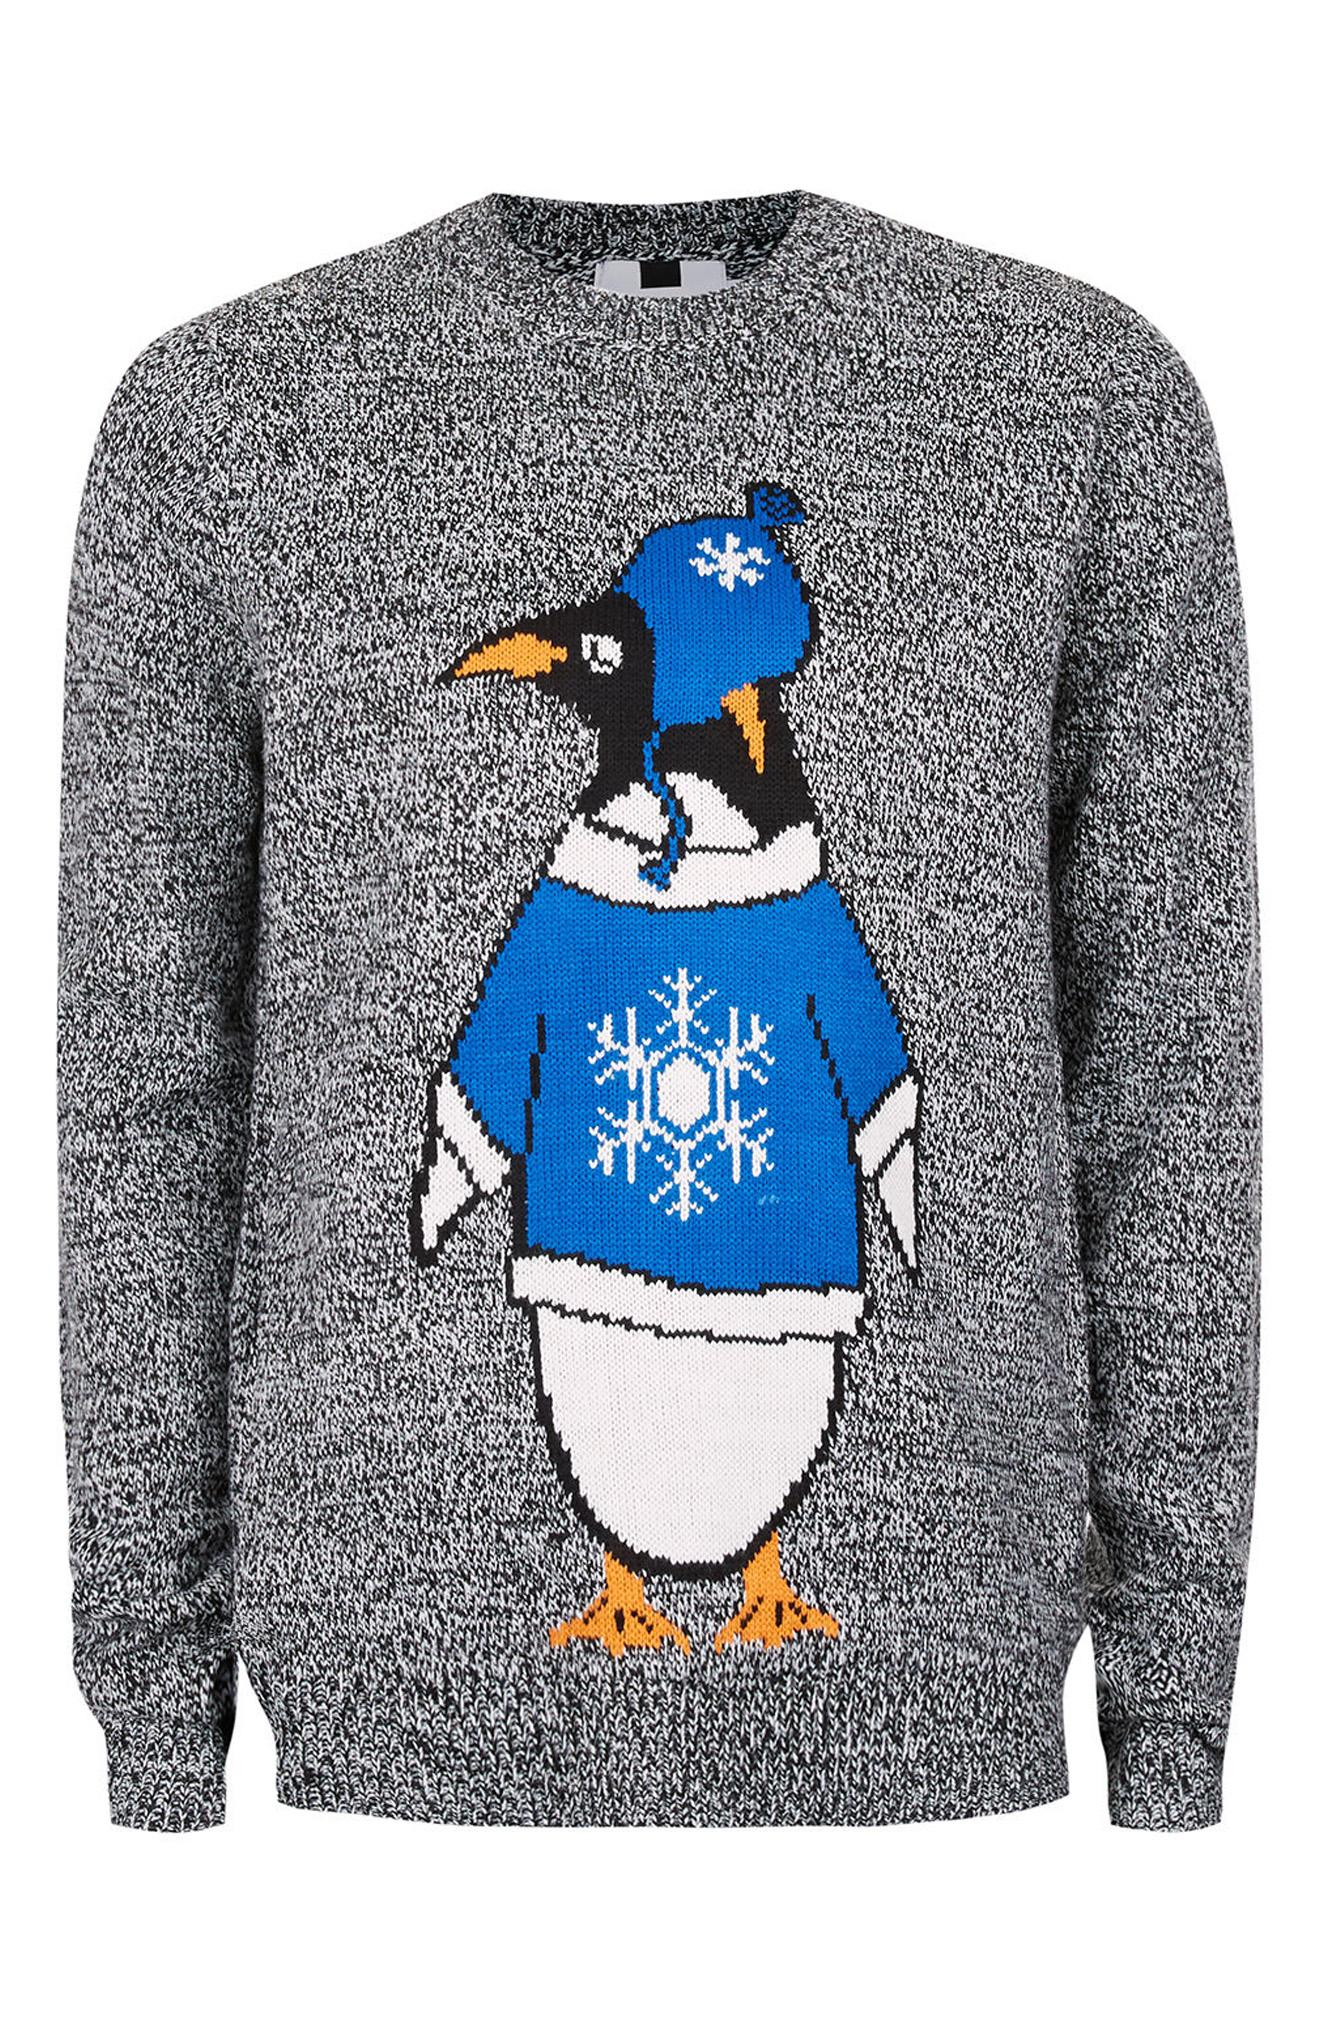 Topman Penguin Holiday Sweater, $55 (Photo: Nordstrom)